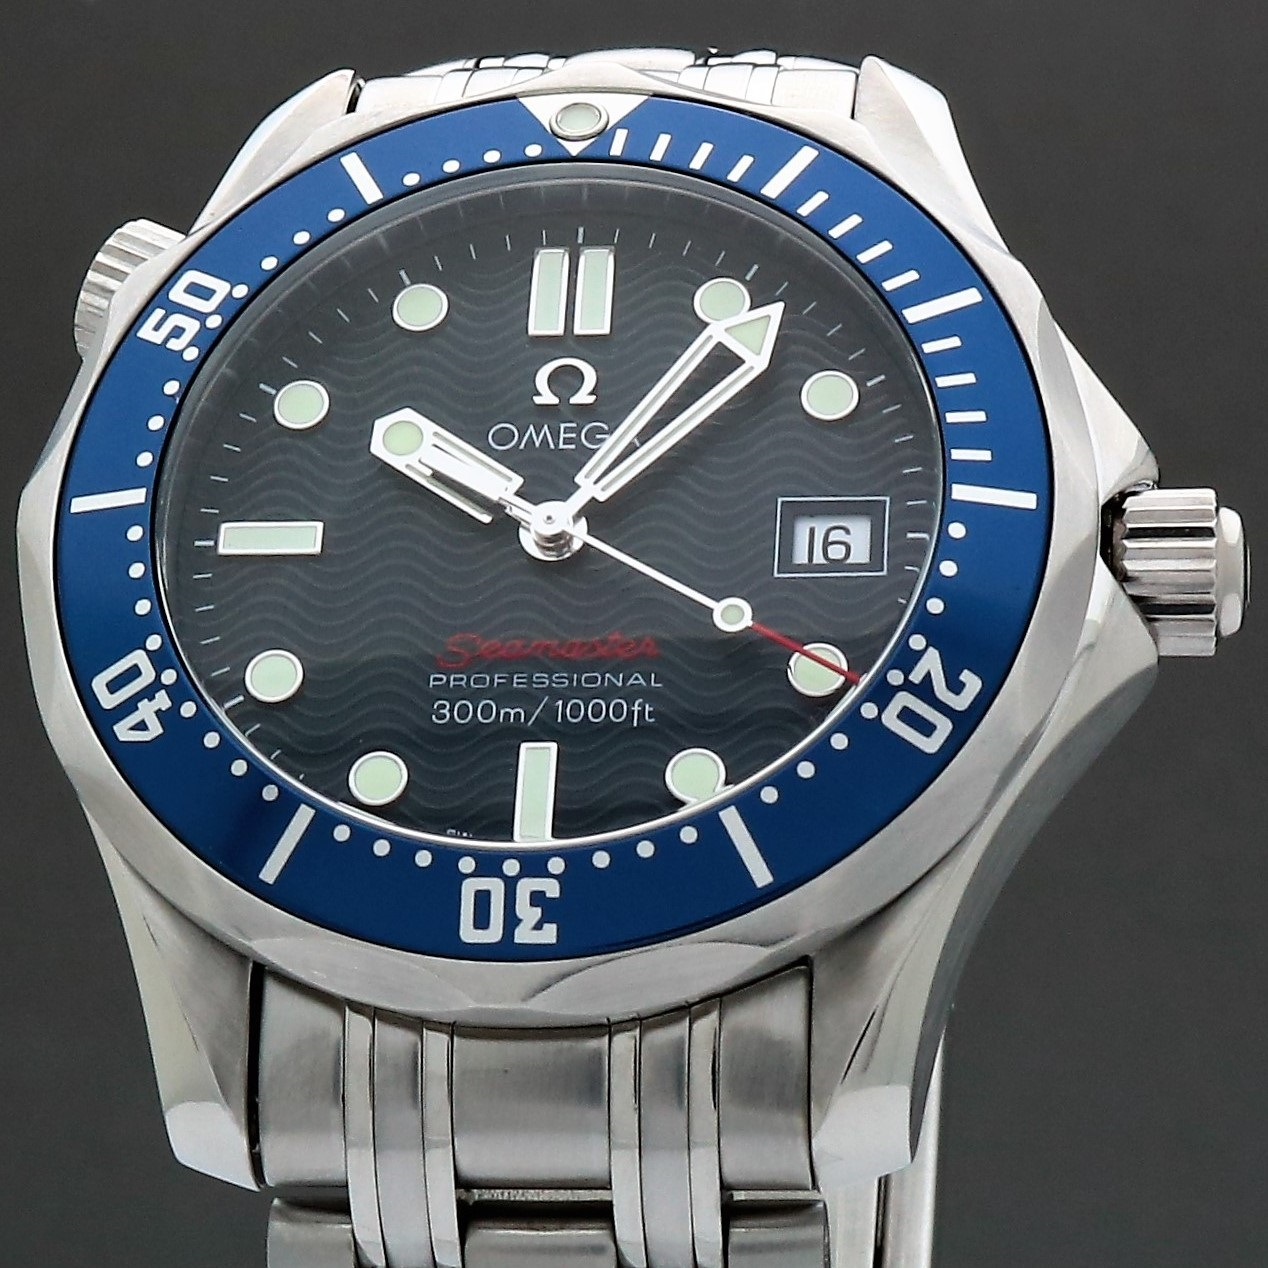 Omega Seamaster Professional 300M 2223.80 James Bond 36mm Quartz